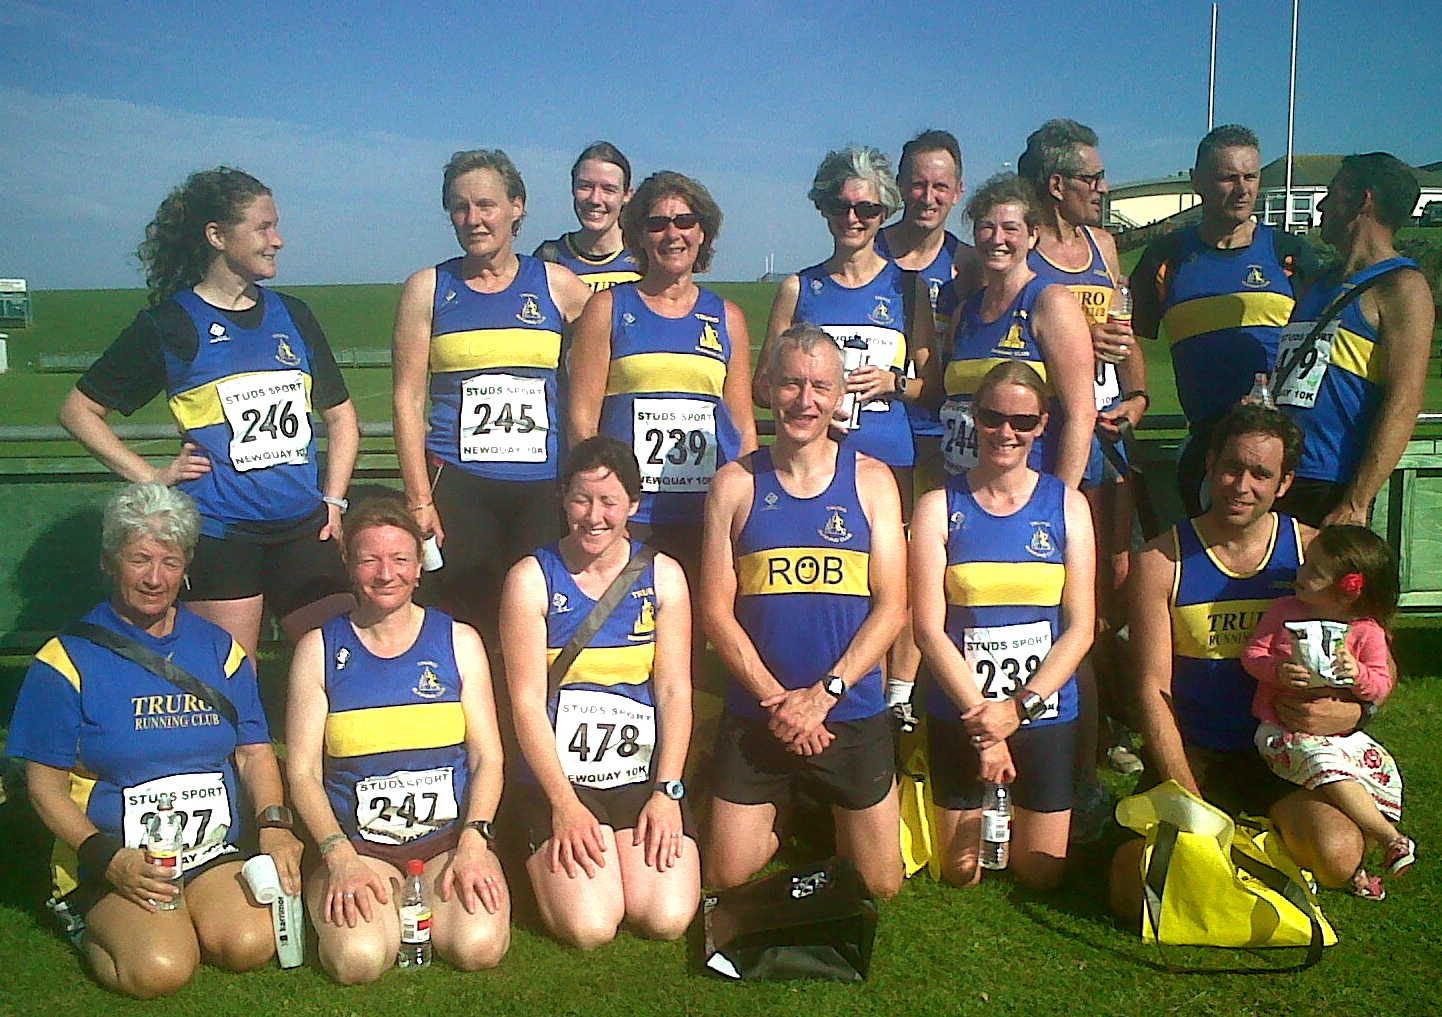 TRC team, Newquay 10k, Oct 2011